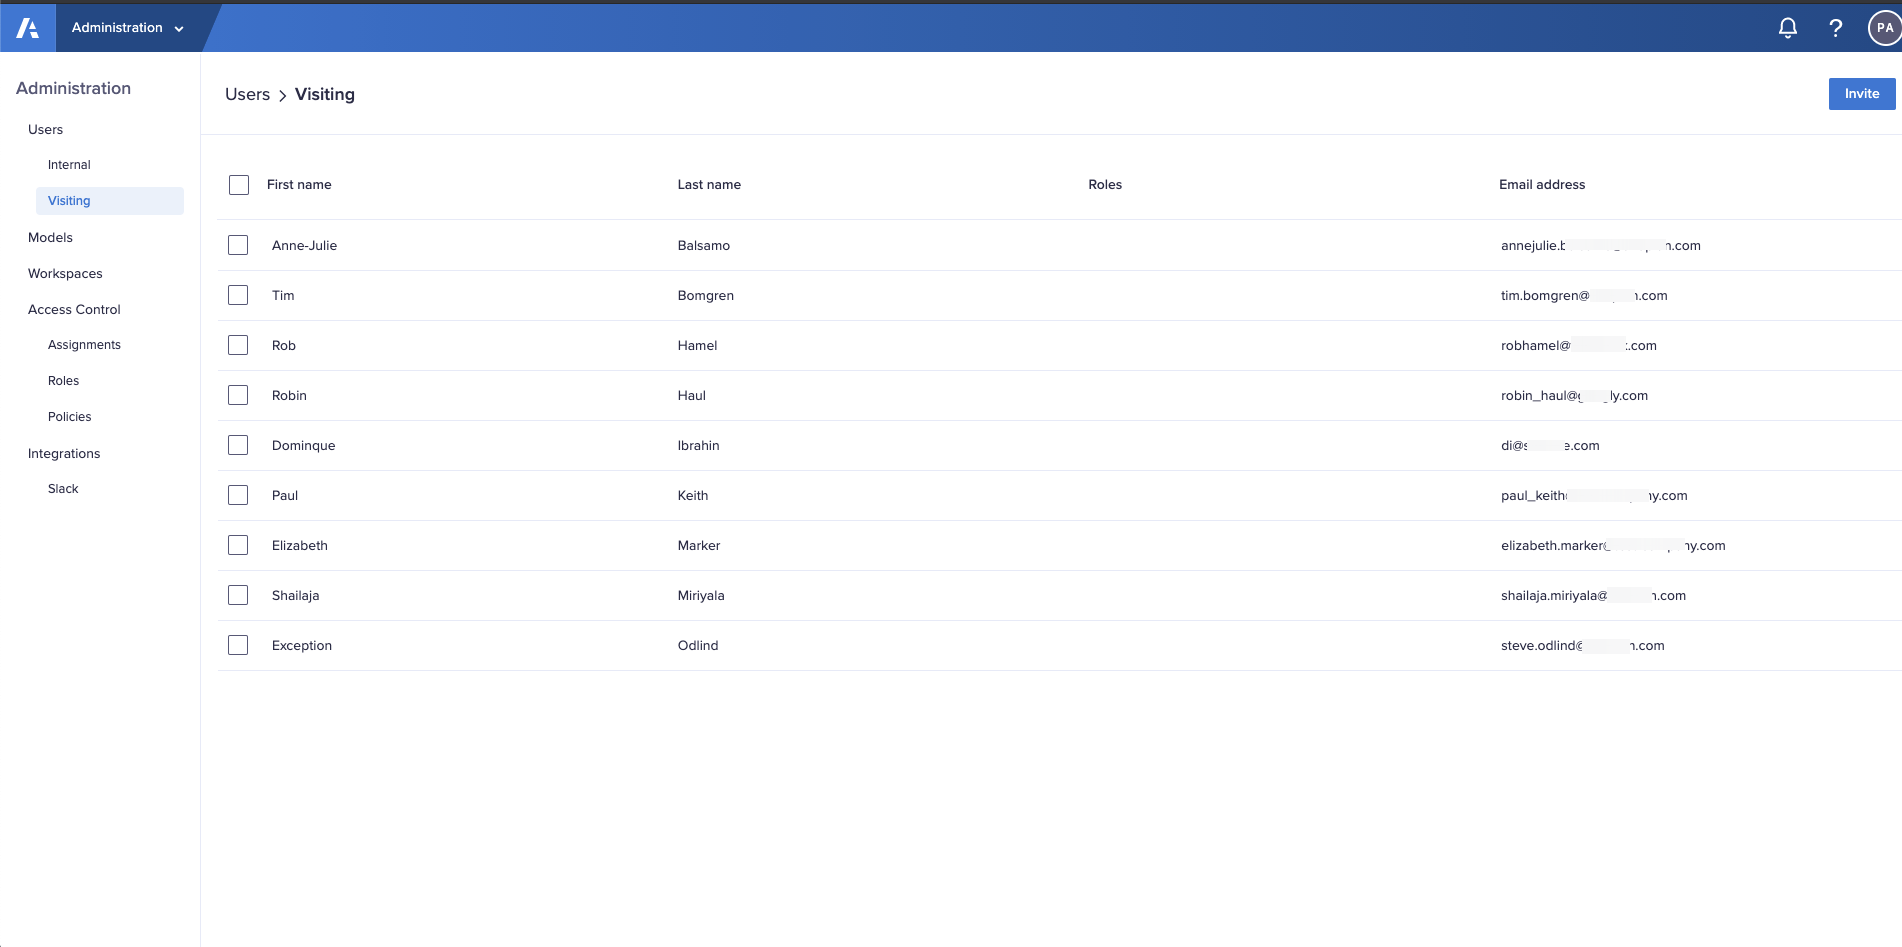 The Users > Visiting interface in the Administration console.  A list of visiting users displays with names, roles, and email addresses.